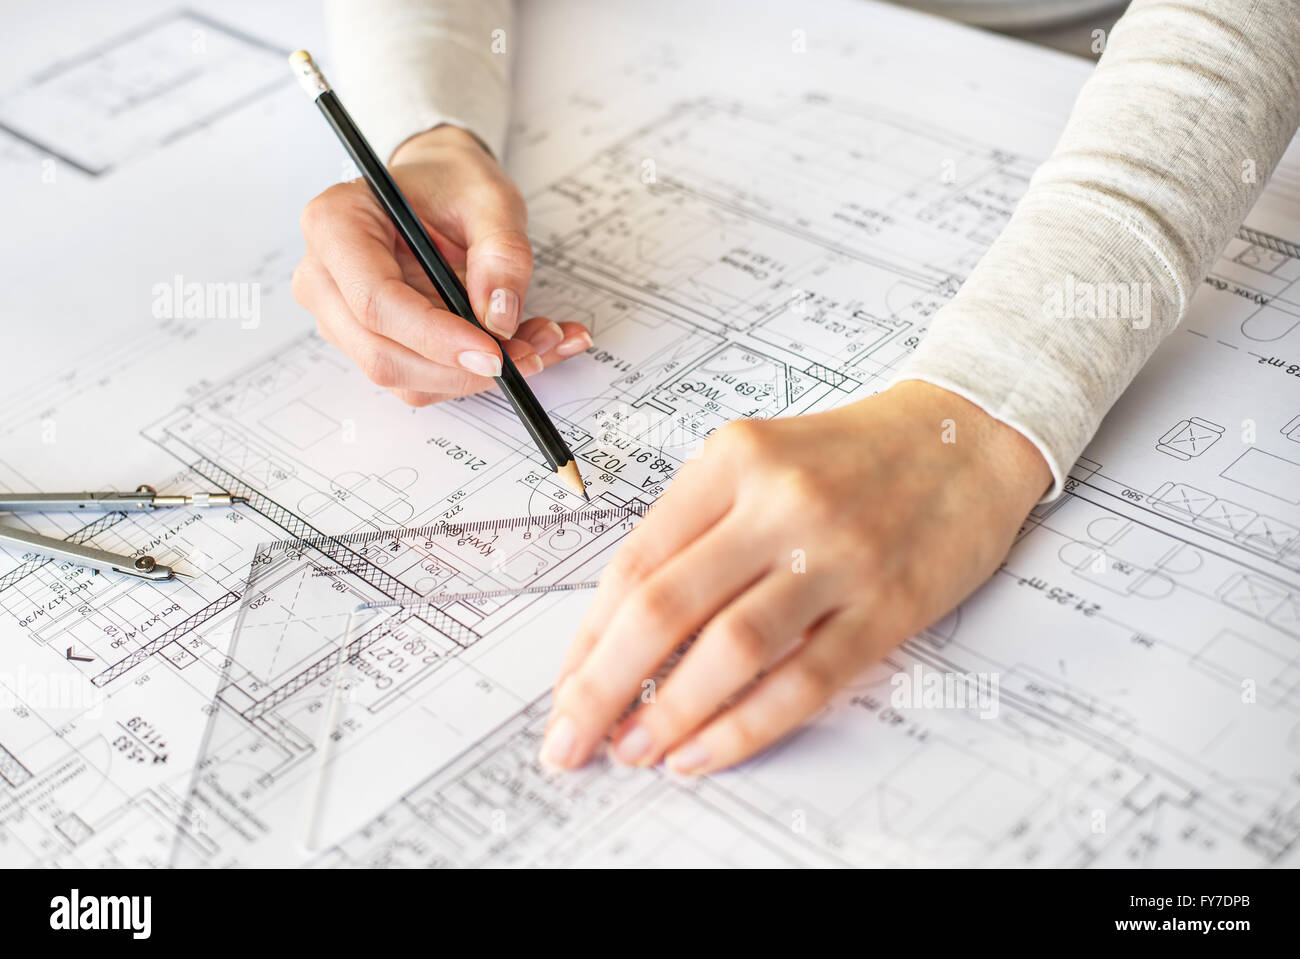 Interior Cad Hands Of Engineer Drawing By Pencil Stock Photo Royalty